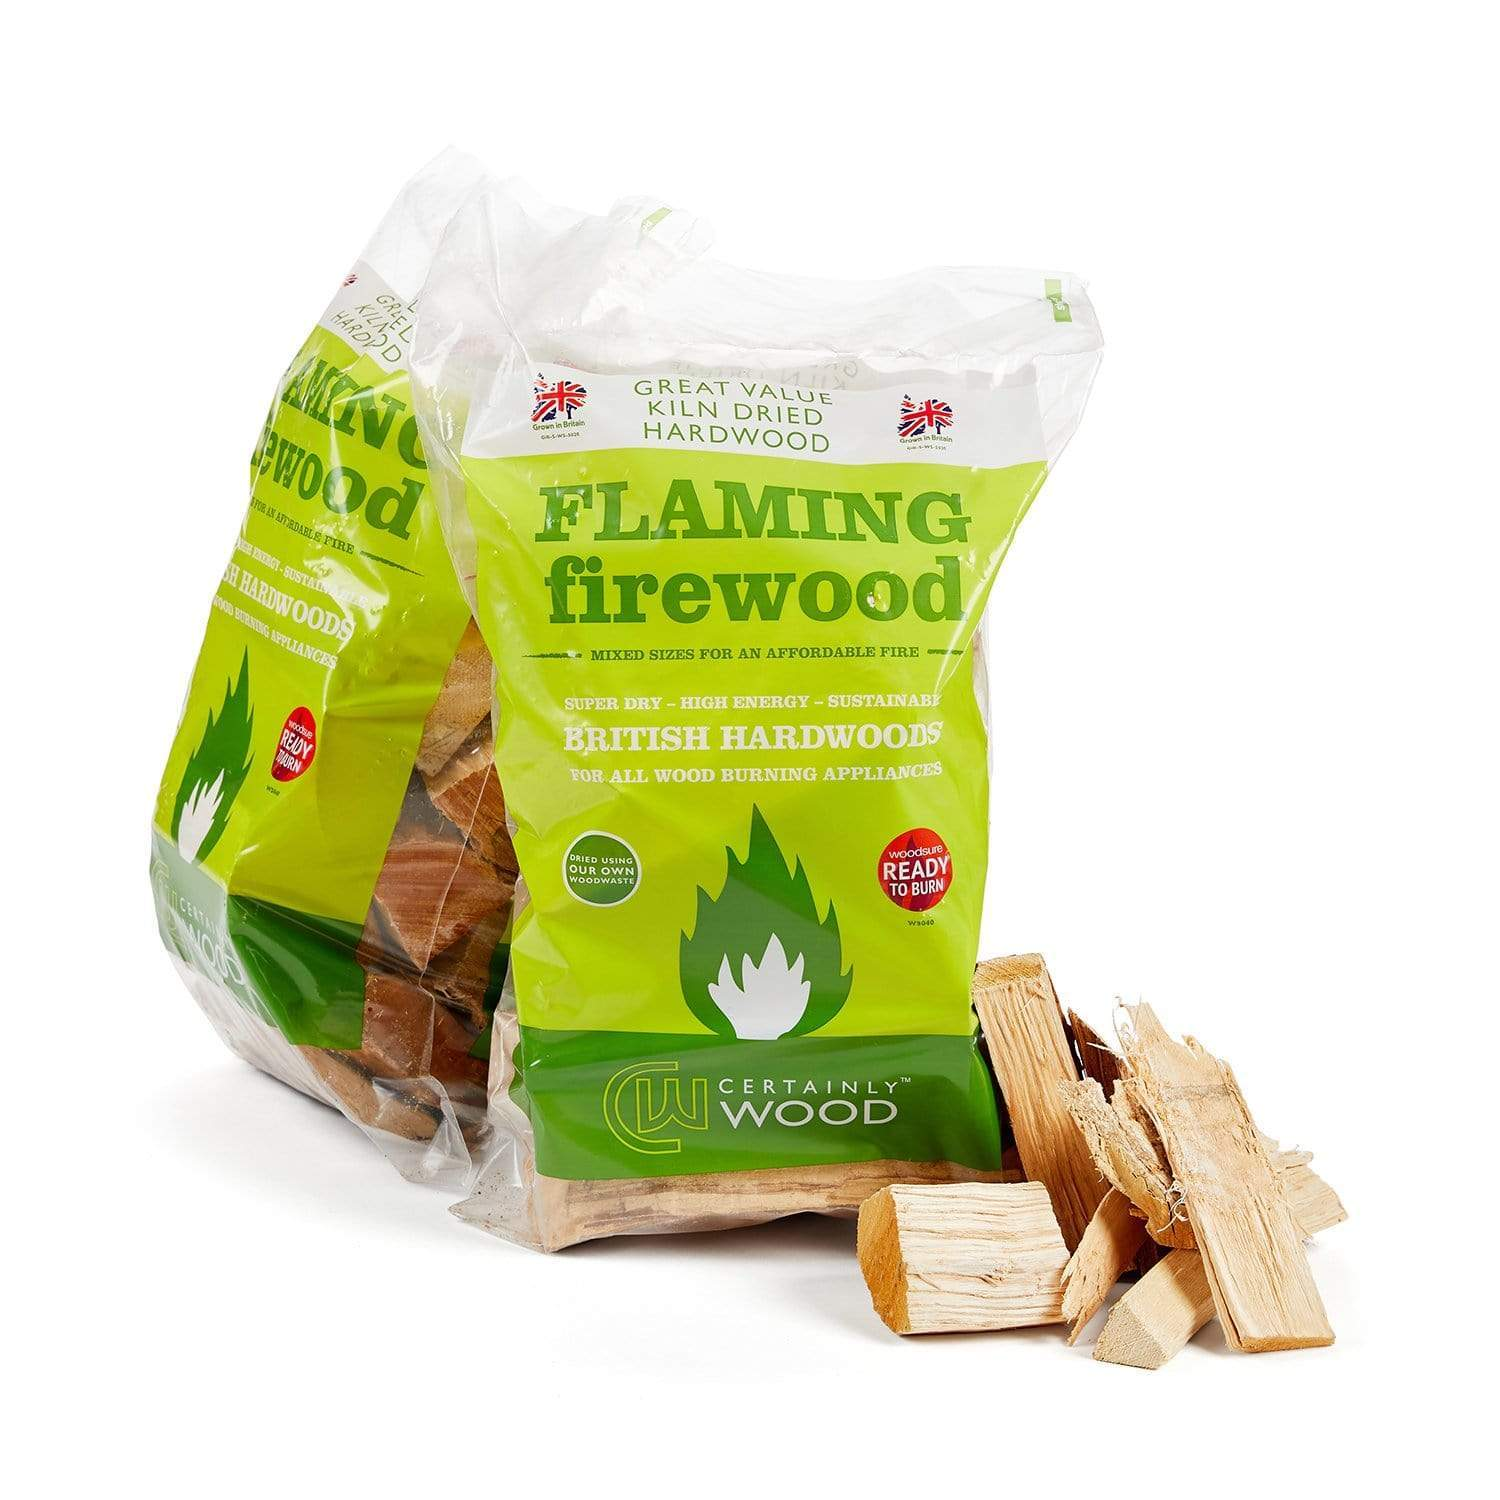 Flaming Firewood